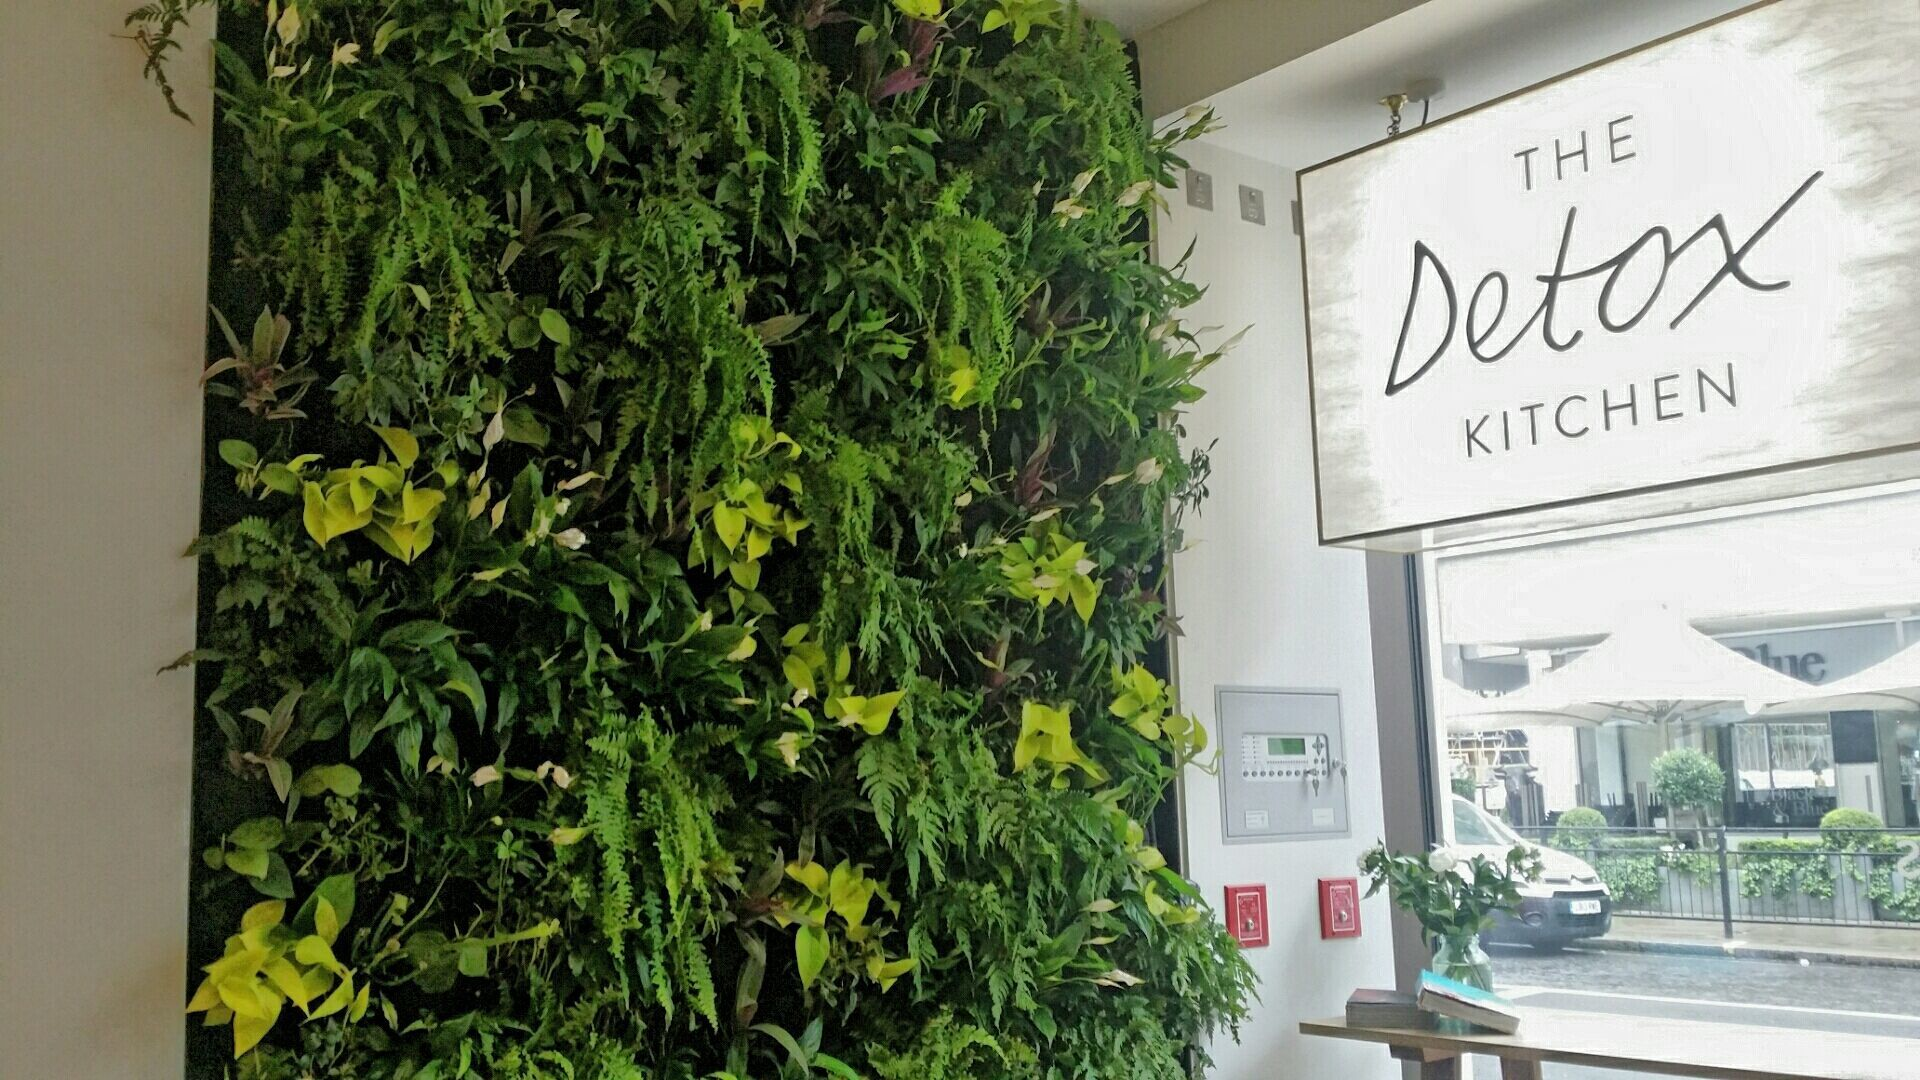 Living Wall Detox Kitchen